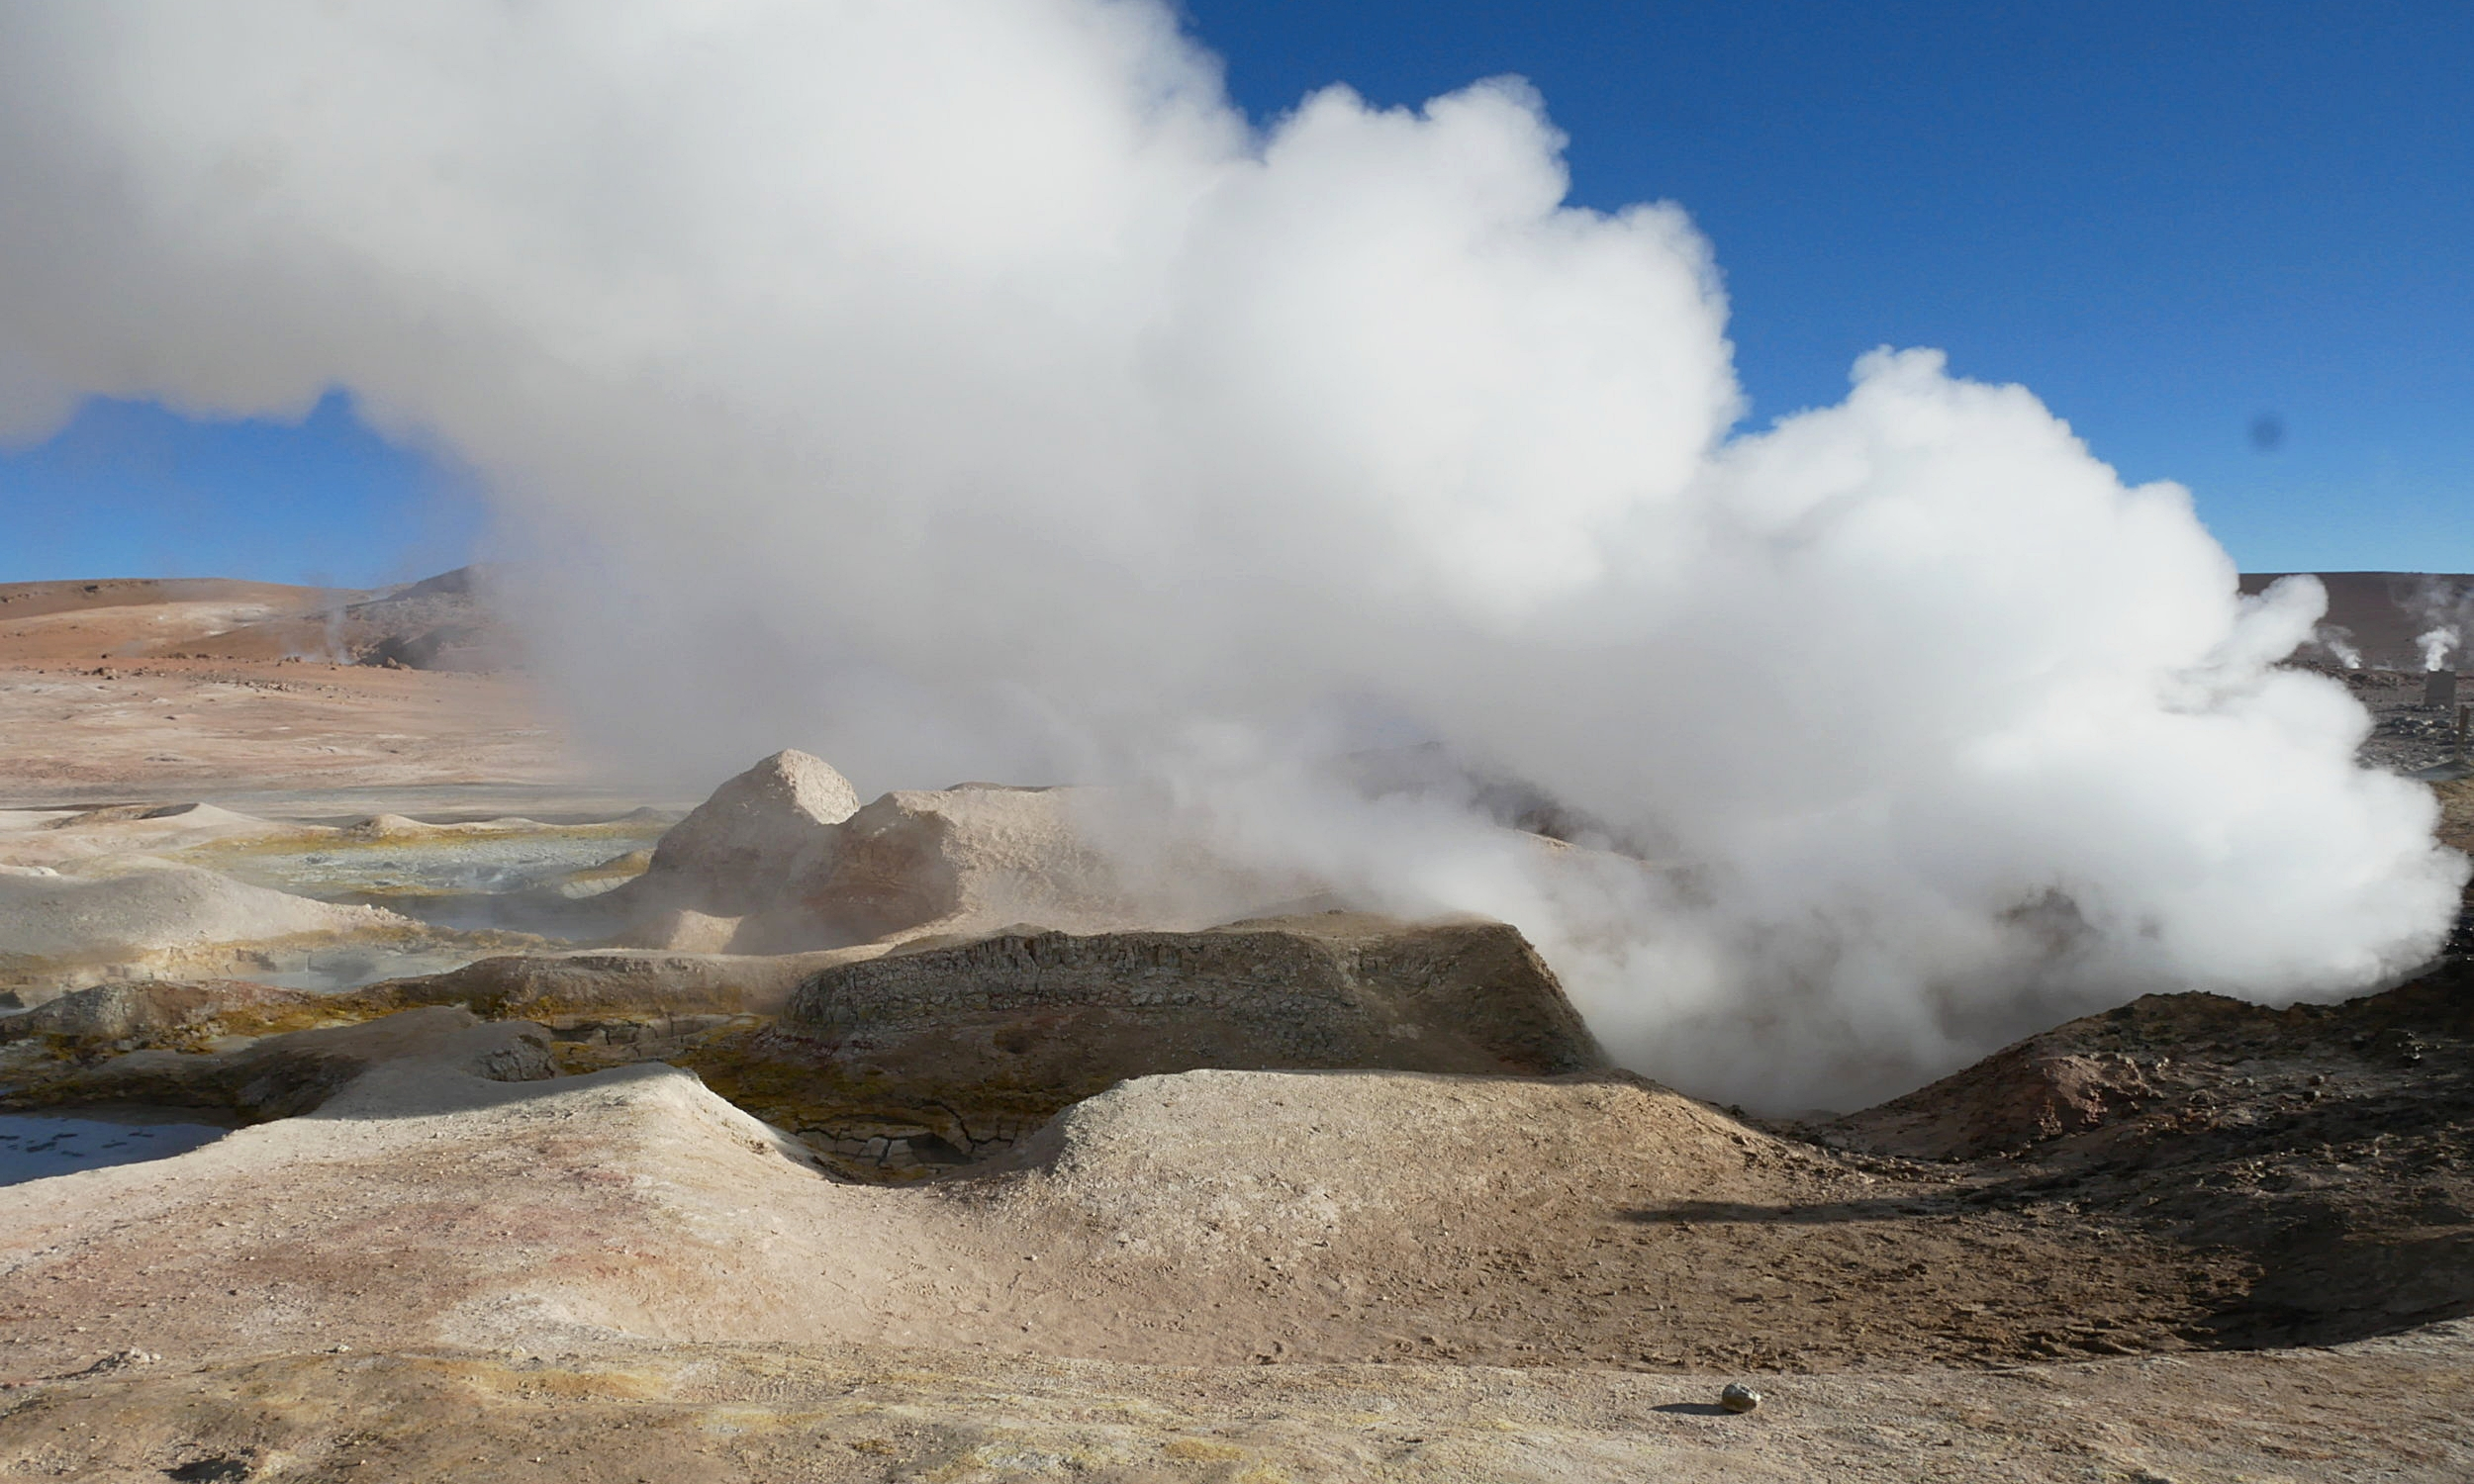 Watching the geysers in action